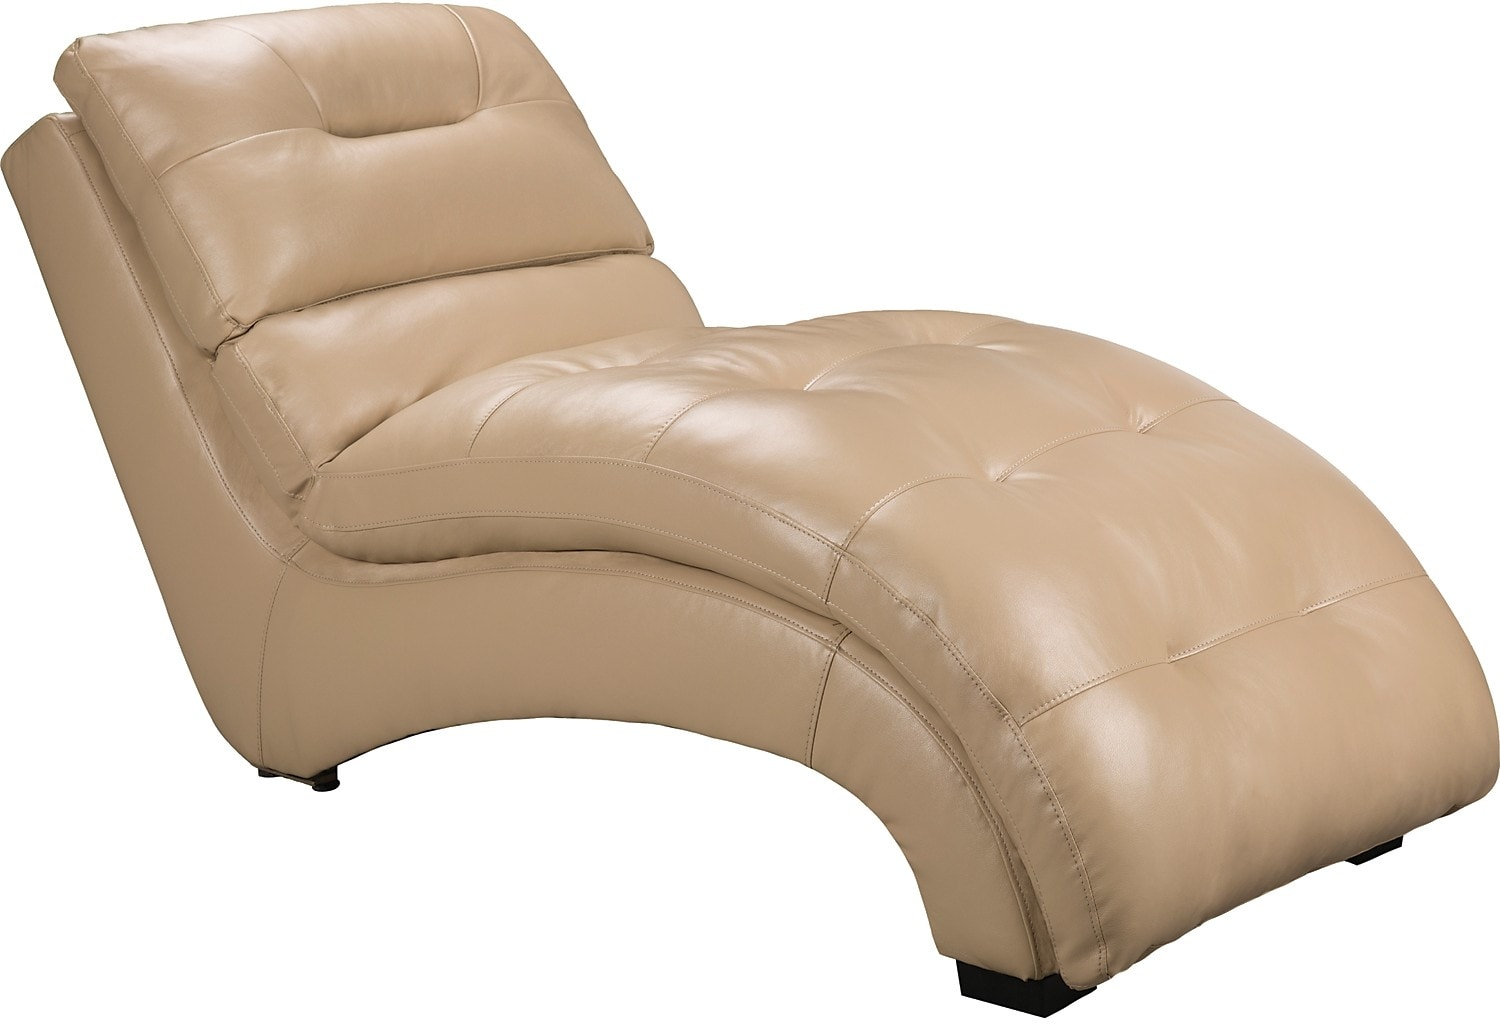 Living Room Furniture - Charlie Faux Leather Curved Chaise - Cream